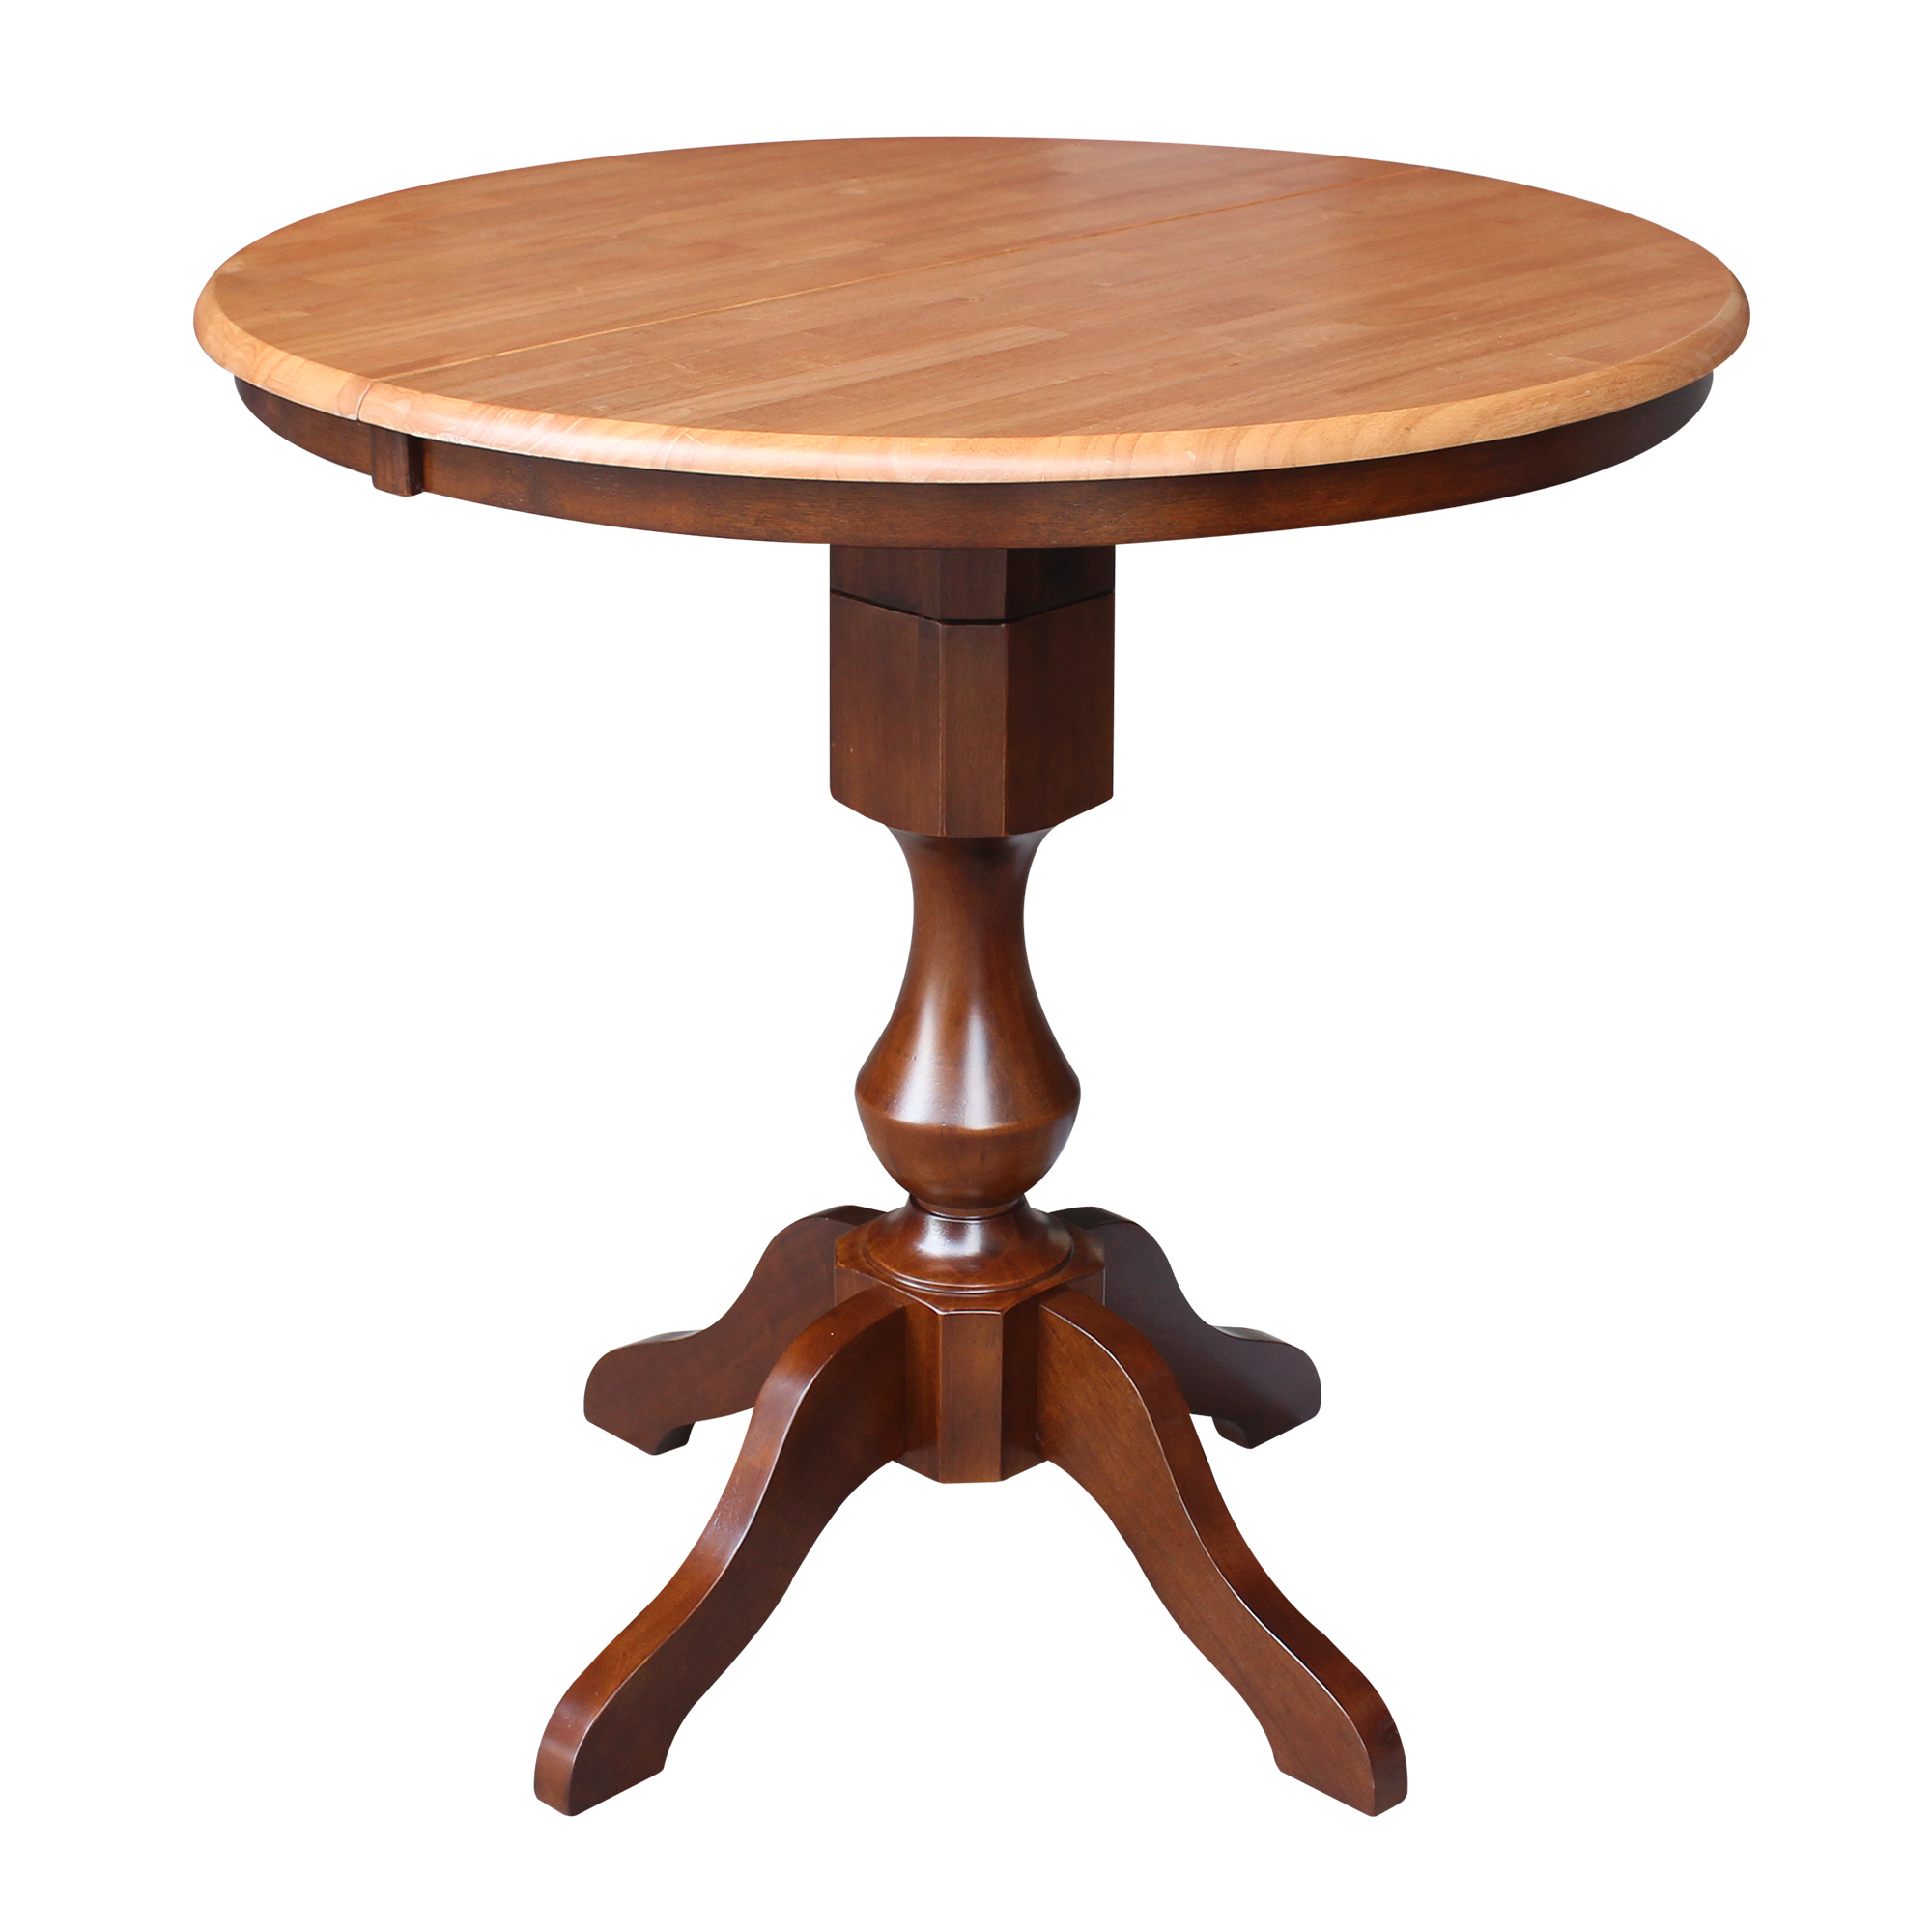 """36"""" Round Top Pedestal Counter Height Table With 12"""" Leaf Throughout Best And Newest Bar Height Pedestal Dining Tables (View 3 of 15)"""